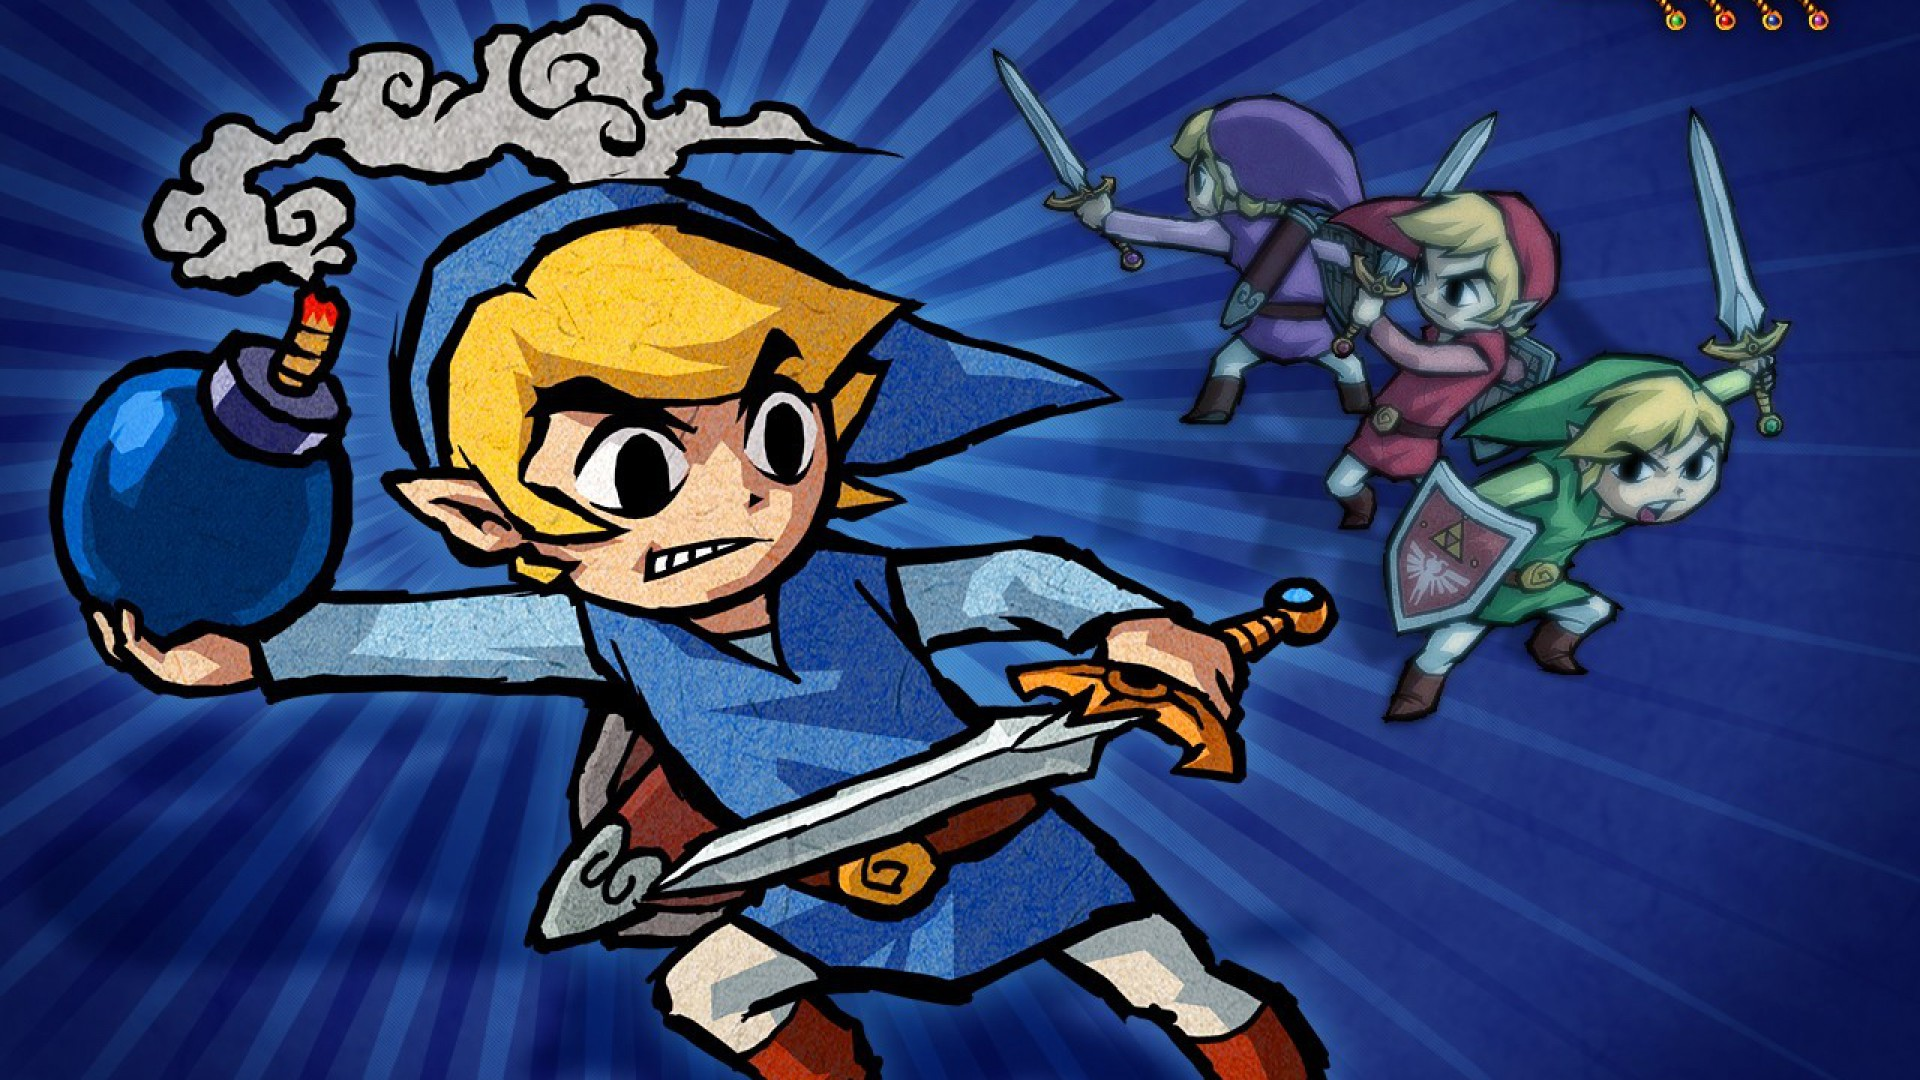 Арт к игре The Legend of Zelda: Four Swords Adventures